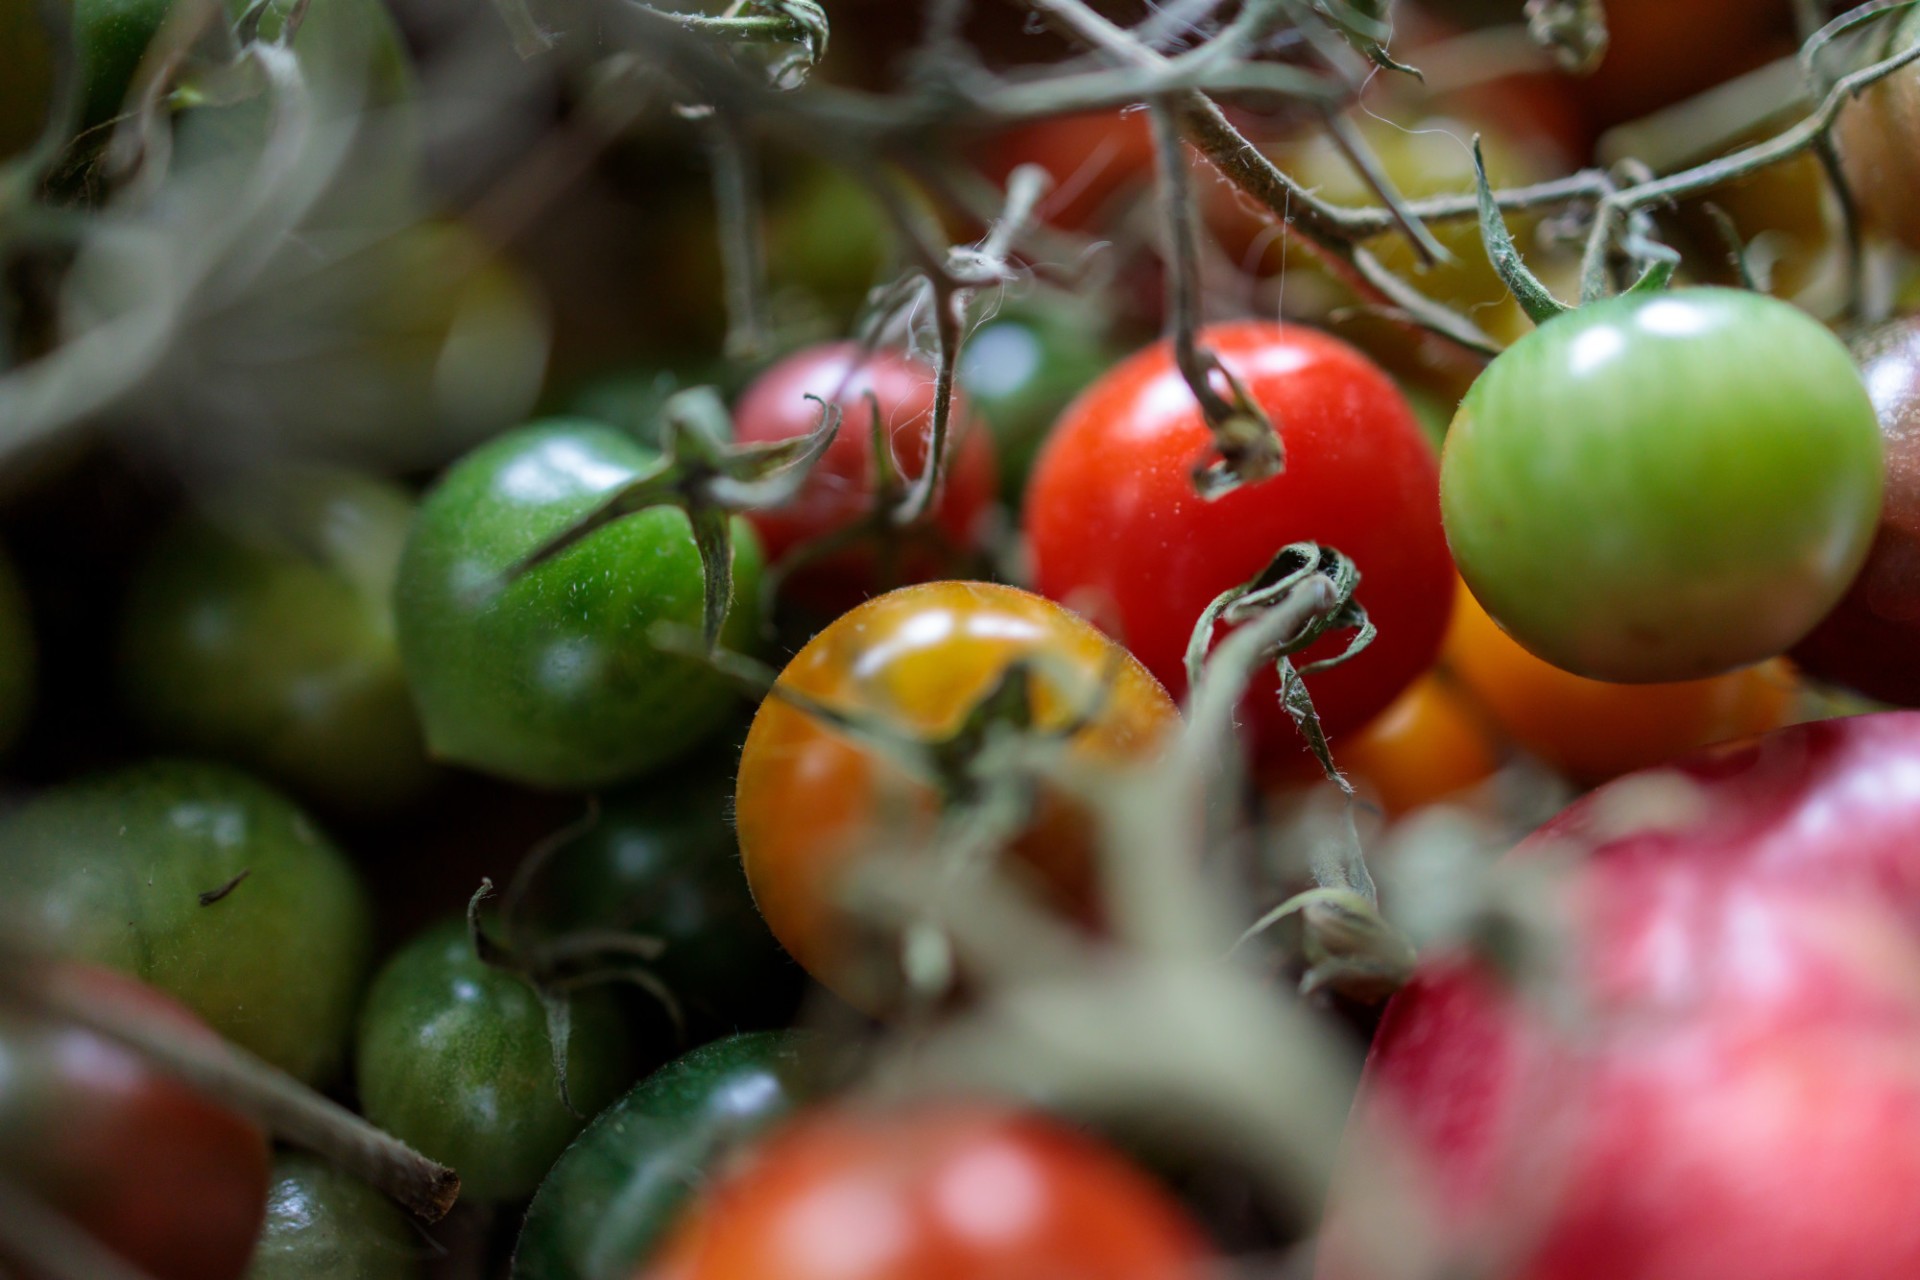 Green and red tomatoes are ripening on the windowsill